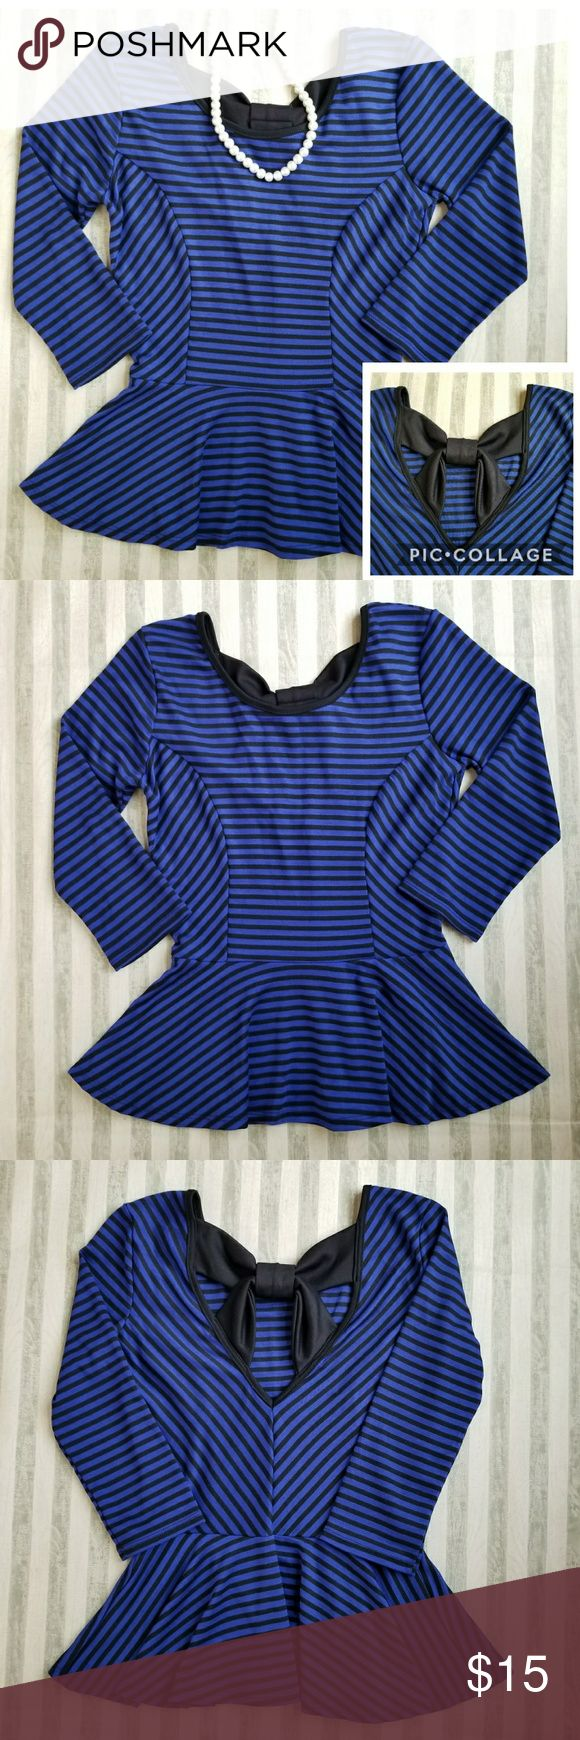 NWT Rue21 3/4 Sleeve Peplum Top Super cute Peplum top with bow detail at the back and can be worn dressy or casual. Has some stretch to it. In EXCELLENT Condition. NEW WITH TAG. Non-smoking home.  Feel free to ask.  Fabric: 87%polyester,  10% rayon and 3% spandex Rue21 Tops